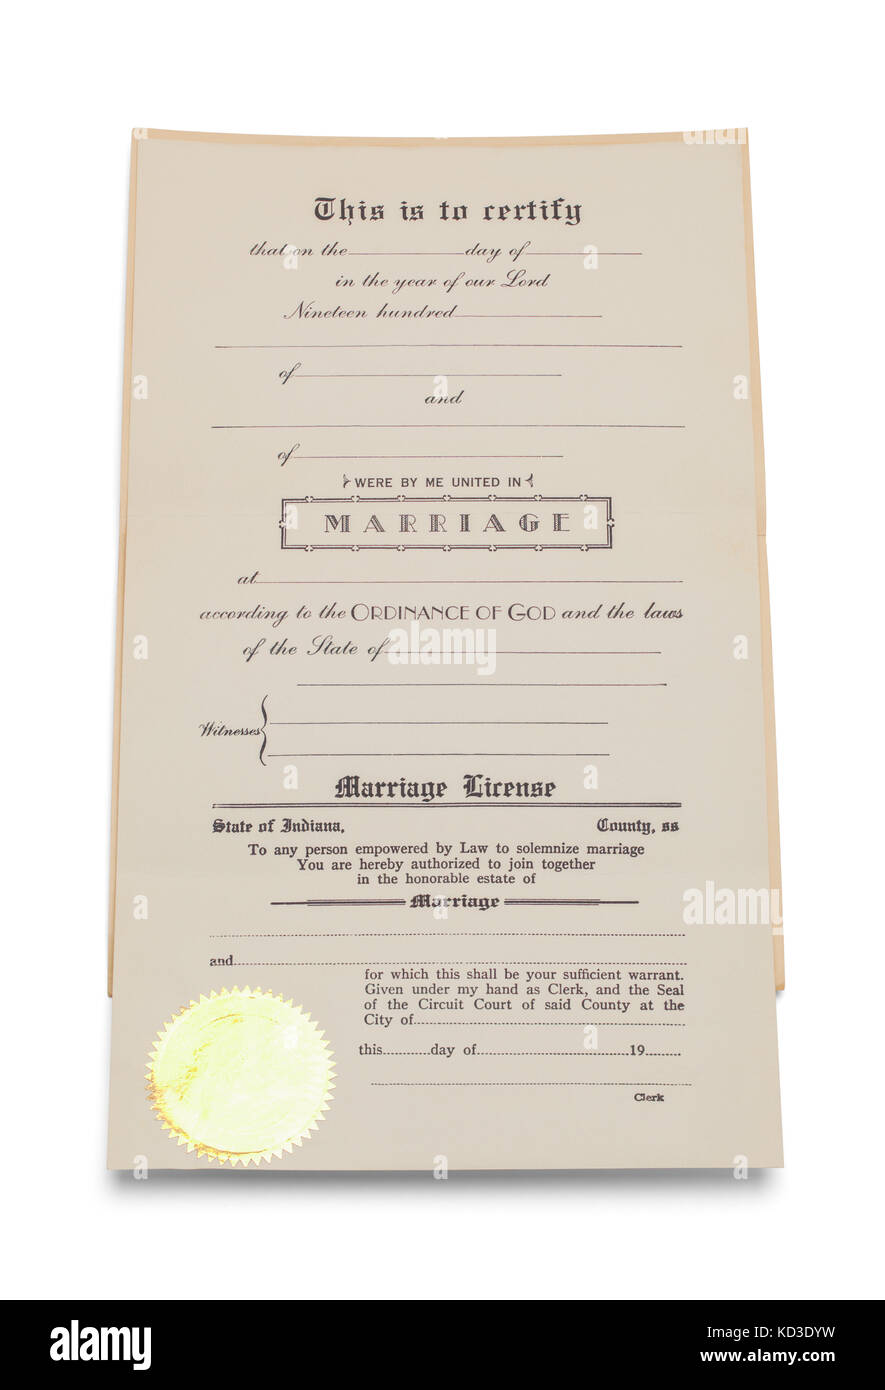 Old Marriage Certificate Wedding Stock Photos & Old Marriage ...